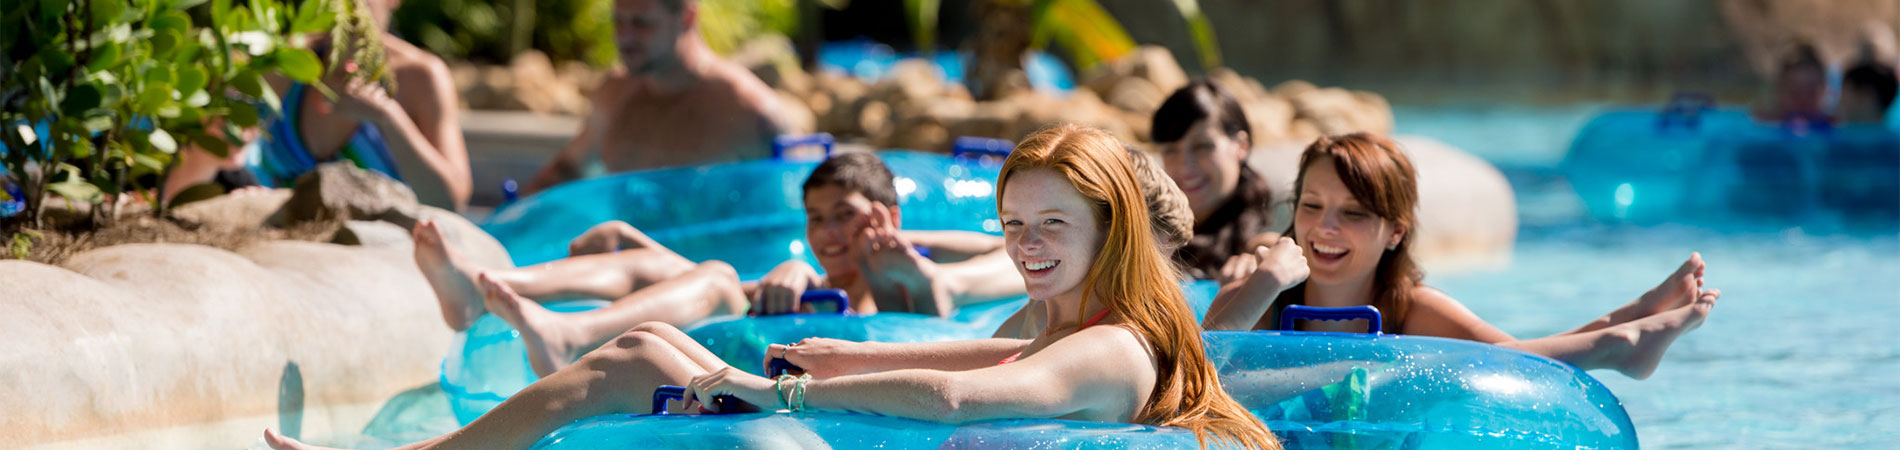 Take a moment to chill in the lazy river at Aquatica.